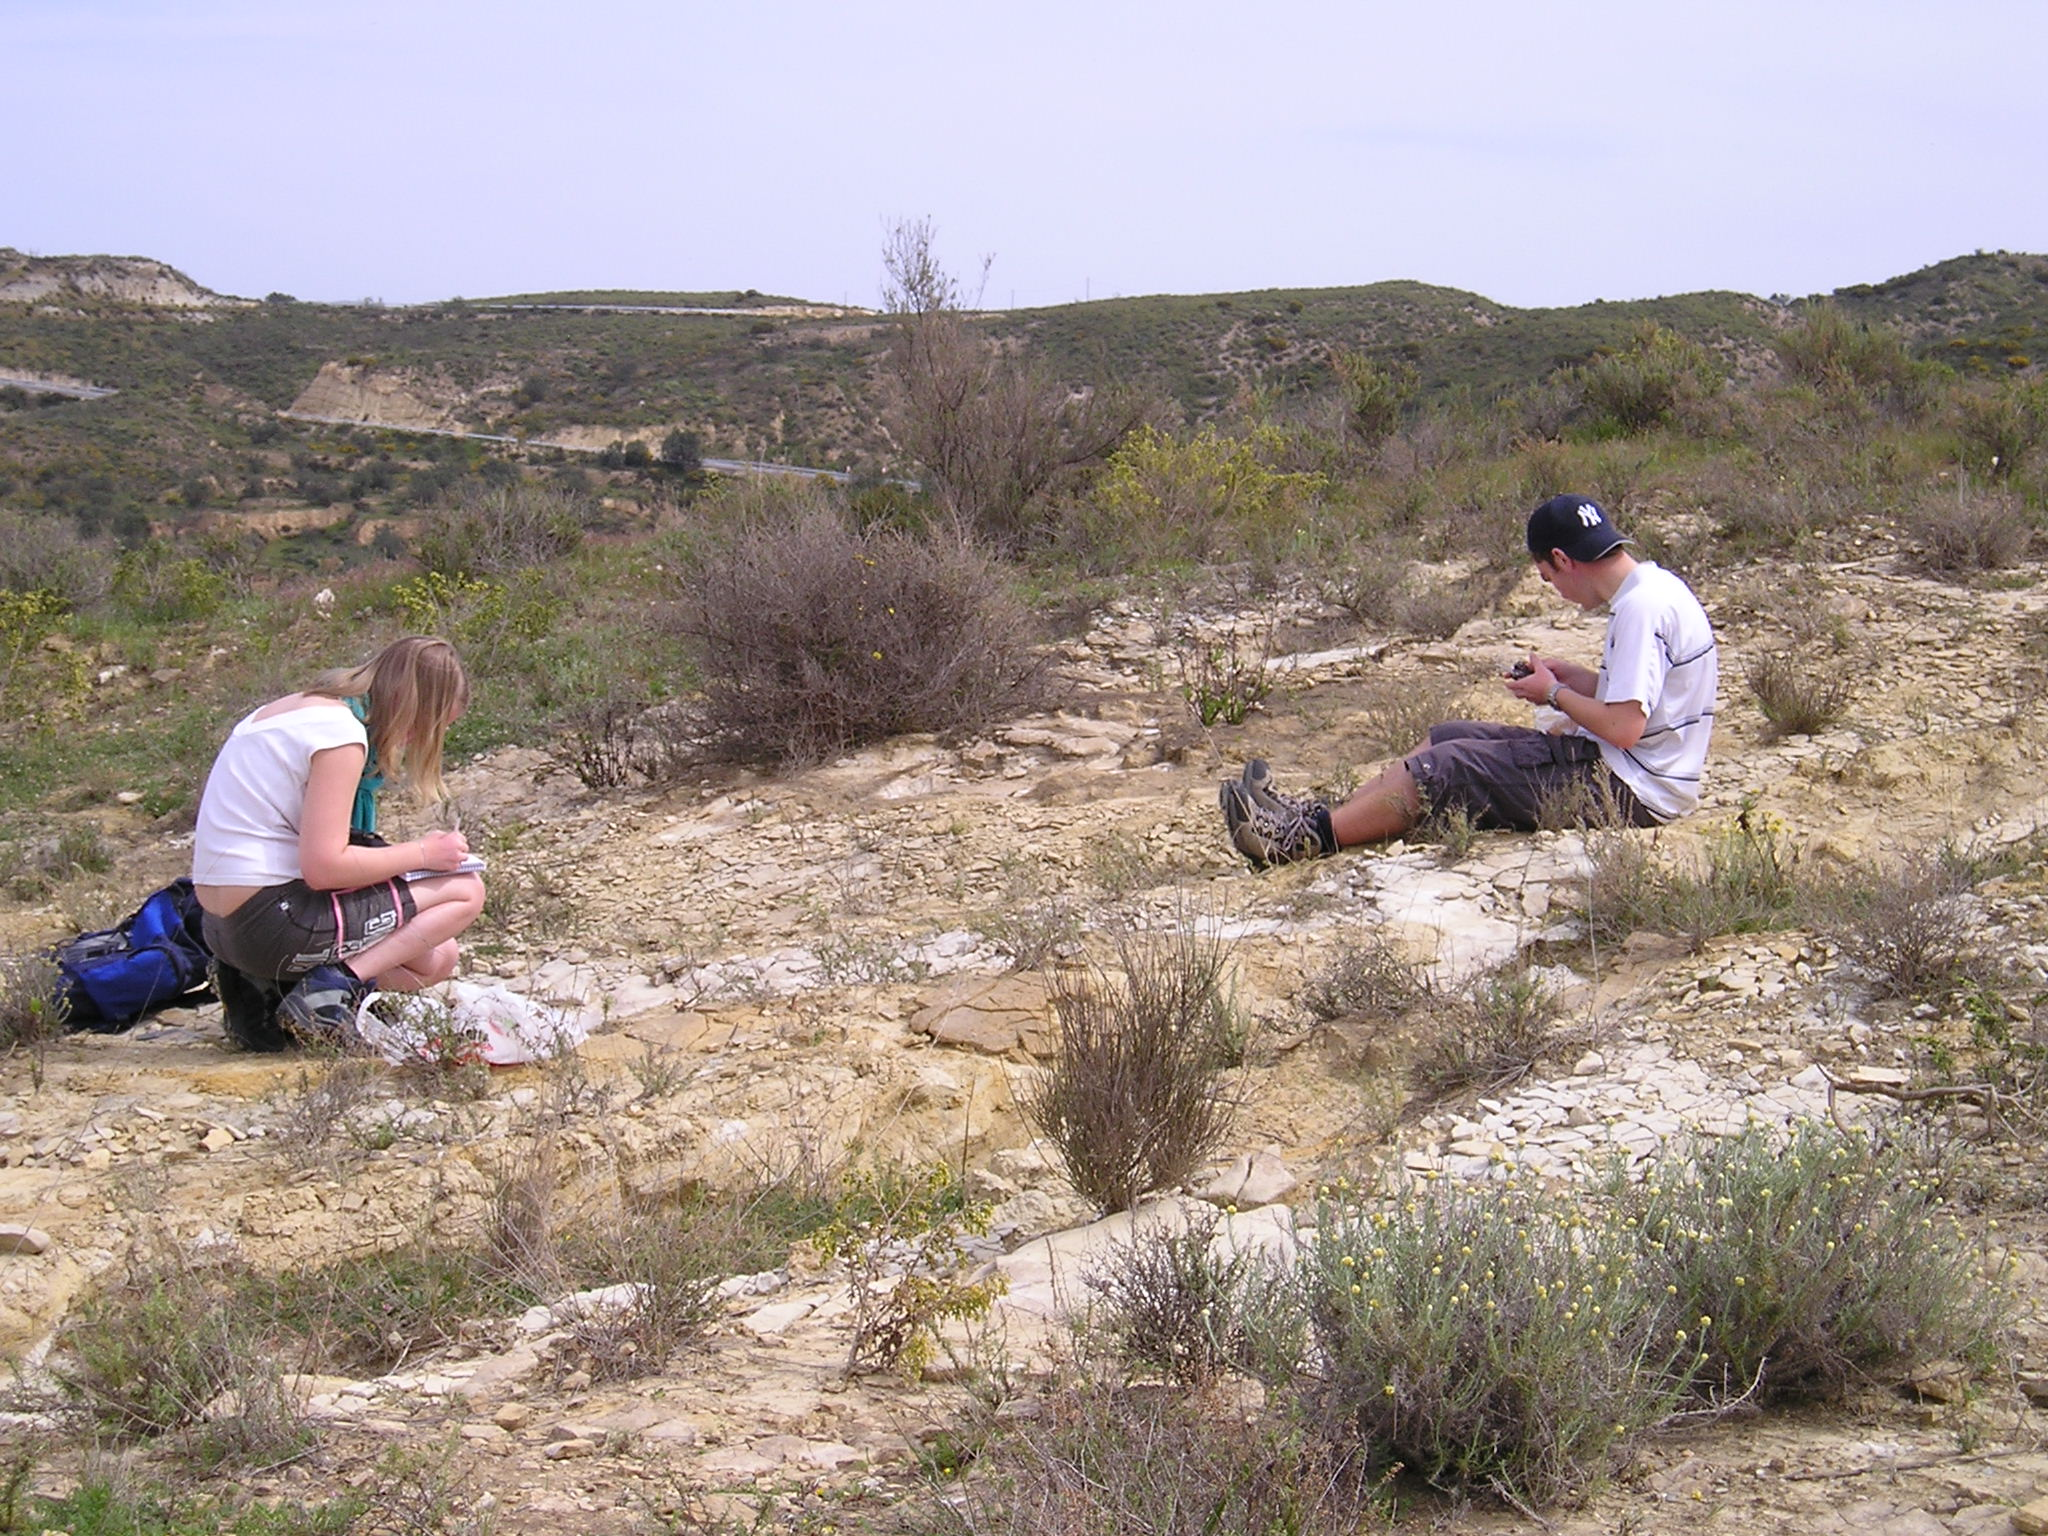 Most of the trip is spent working as a pair or group of three on a research project.